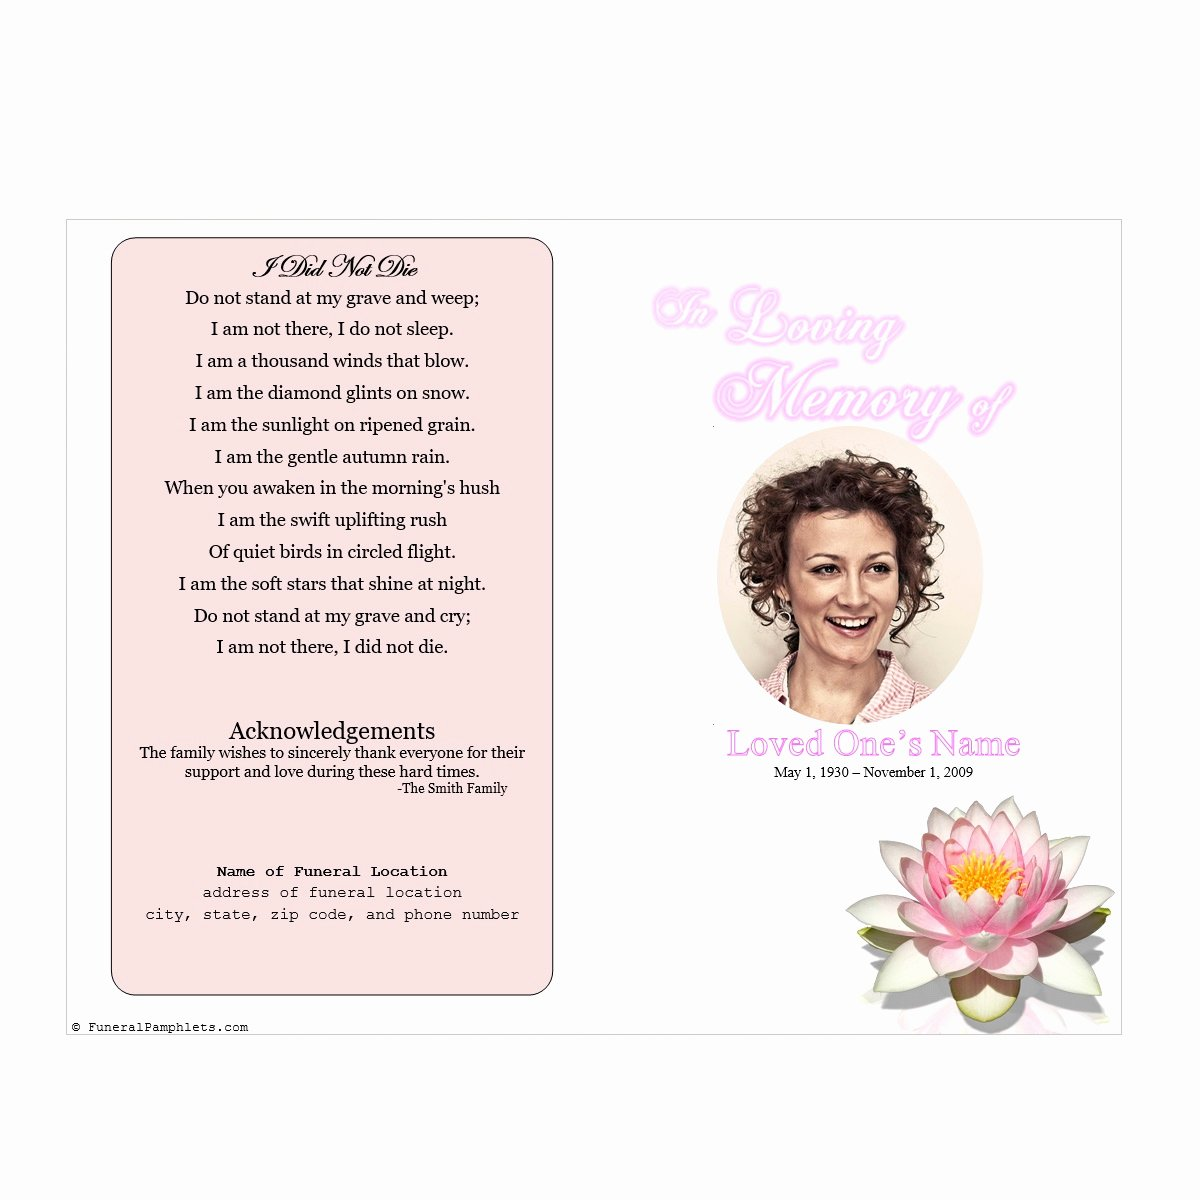 Funeral Program Templates Word Beautiful Lily Single Fold Memorial Program Funeral Pamphlets